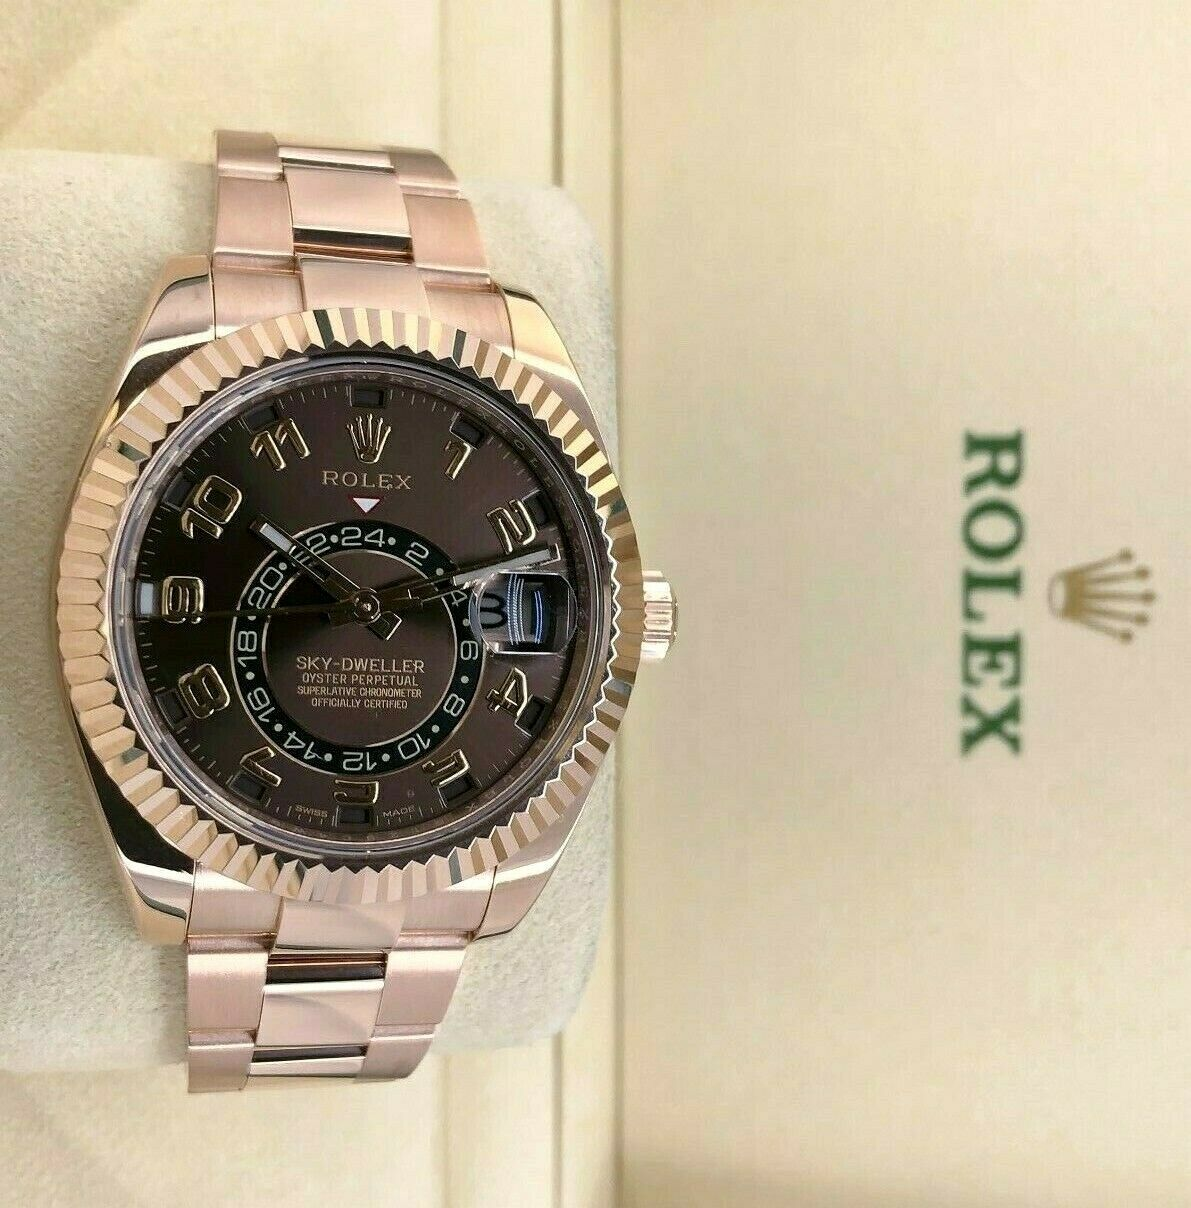 Rolex 42MM Sky- Dweller Watch 18K Rose Gold Ref # 326935 2019 Box and Card